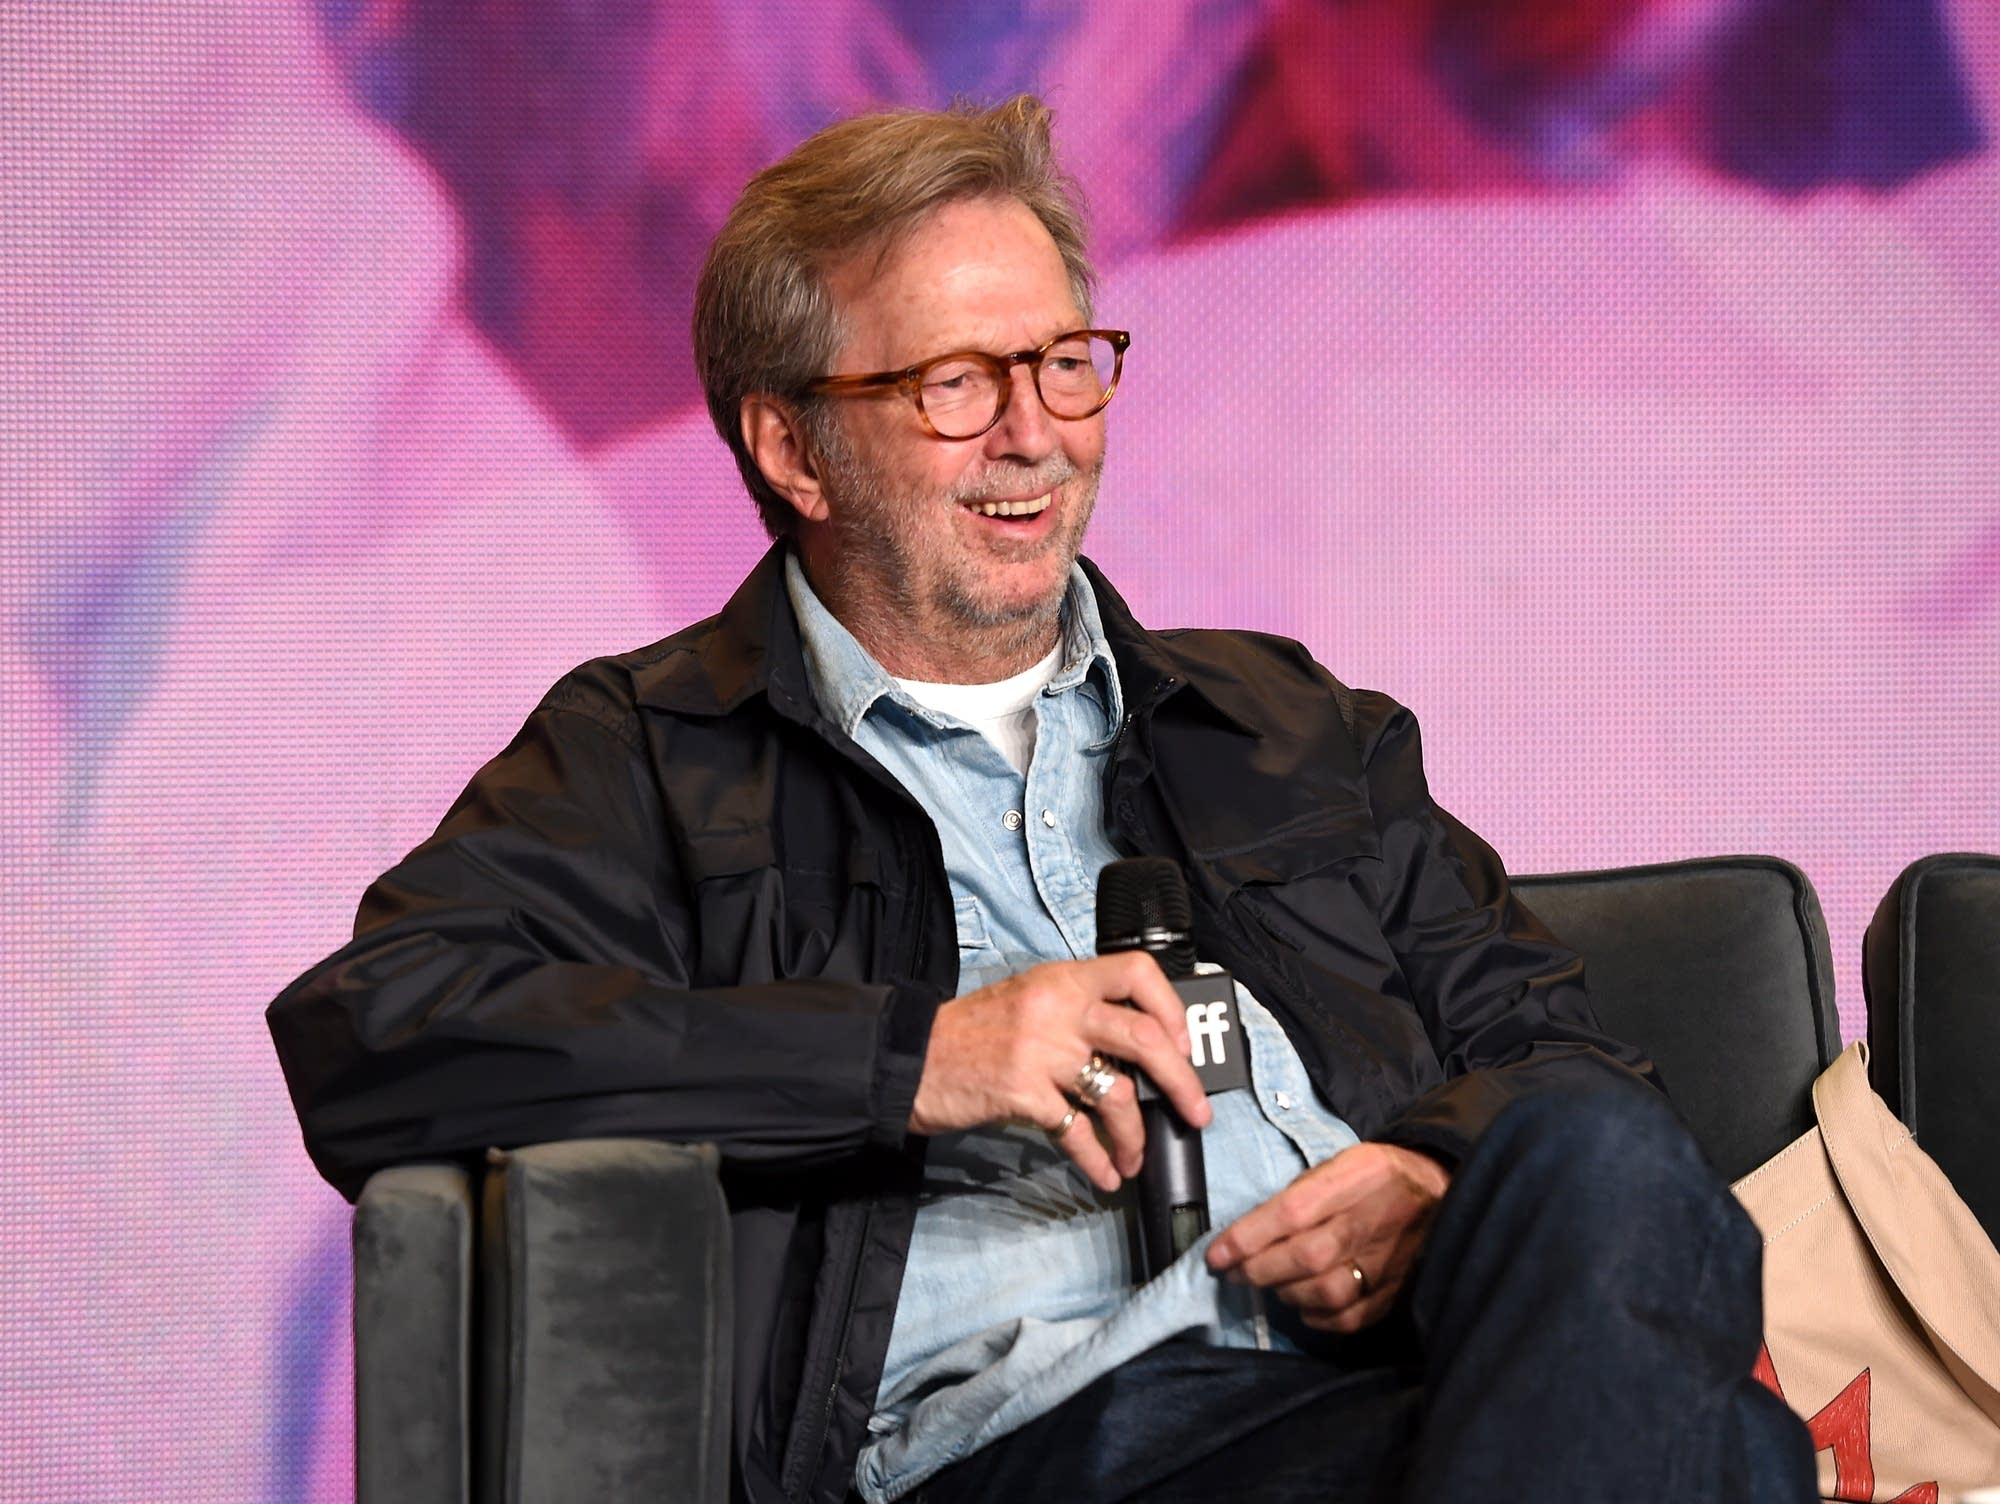 Eric Clapton speaks at the Toronto International Film Festival.